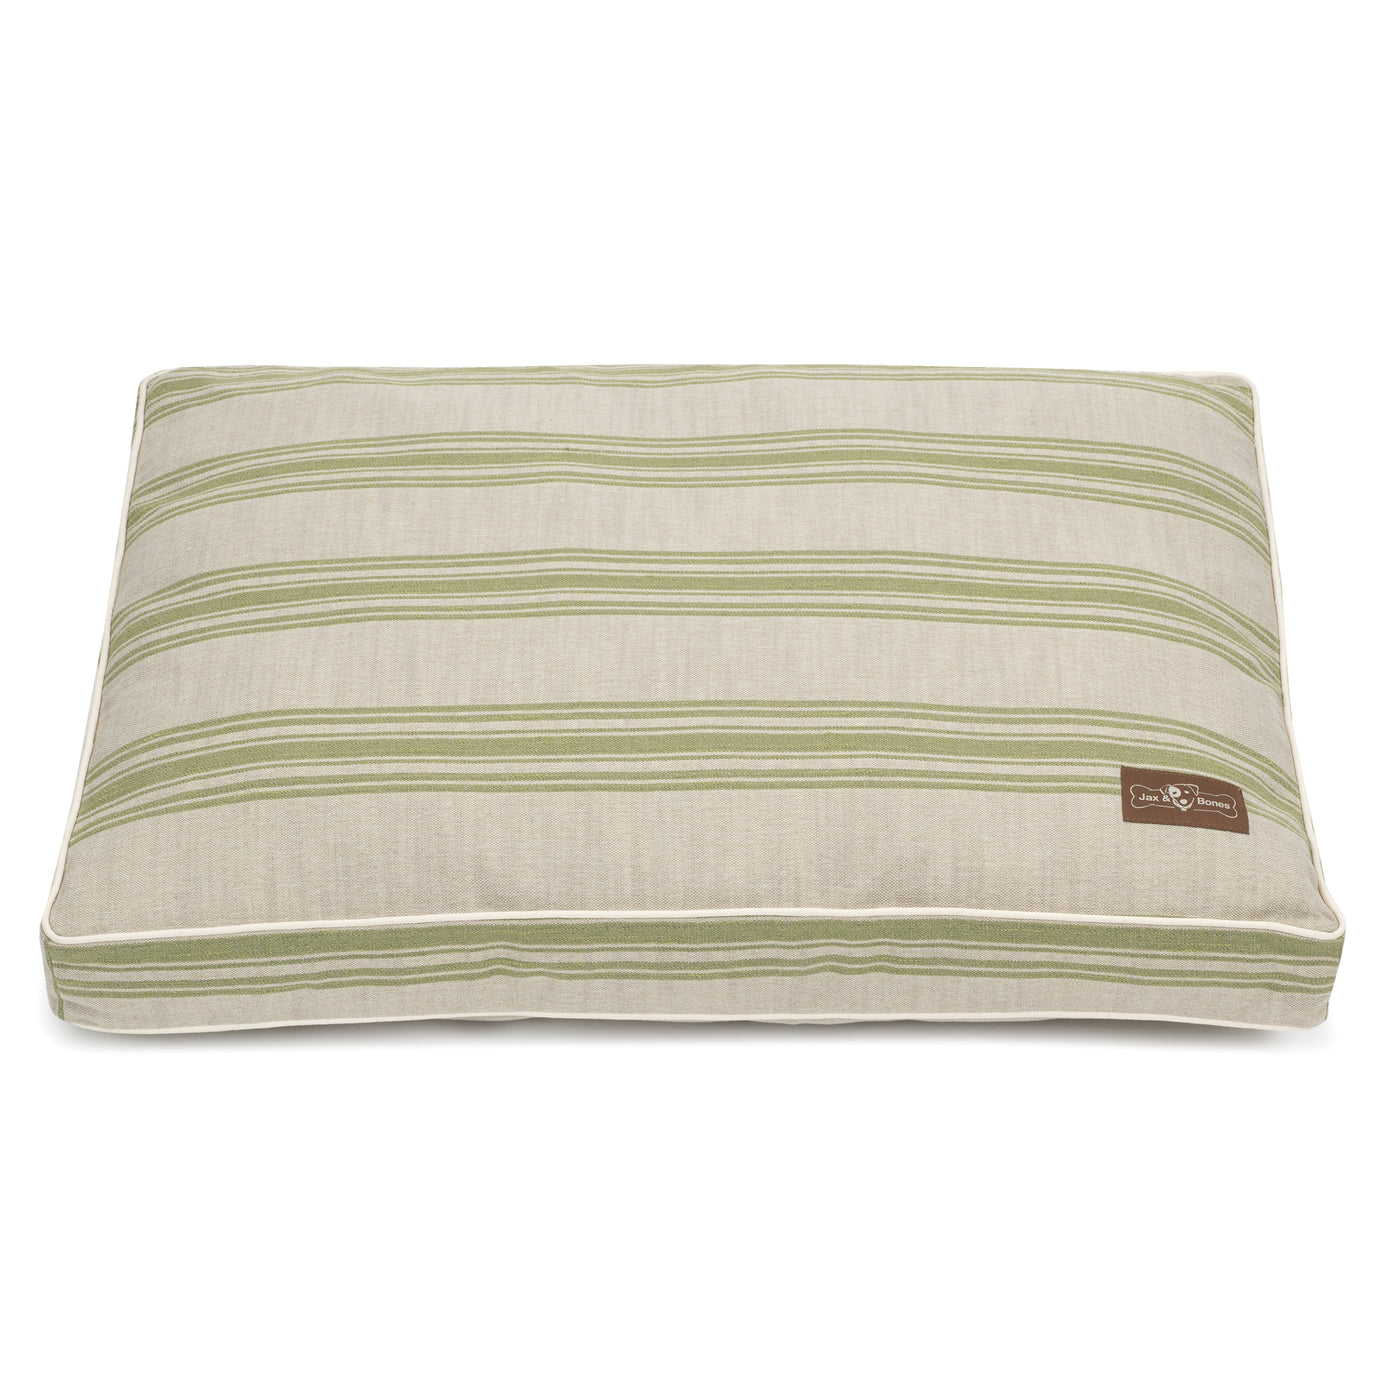 Hillside Lima Cotton Blend Pillow Bed